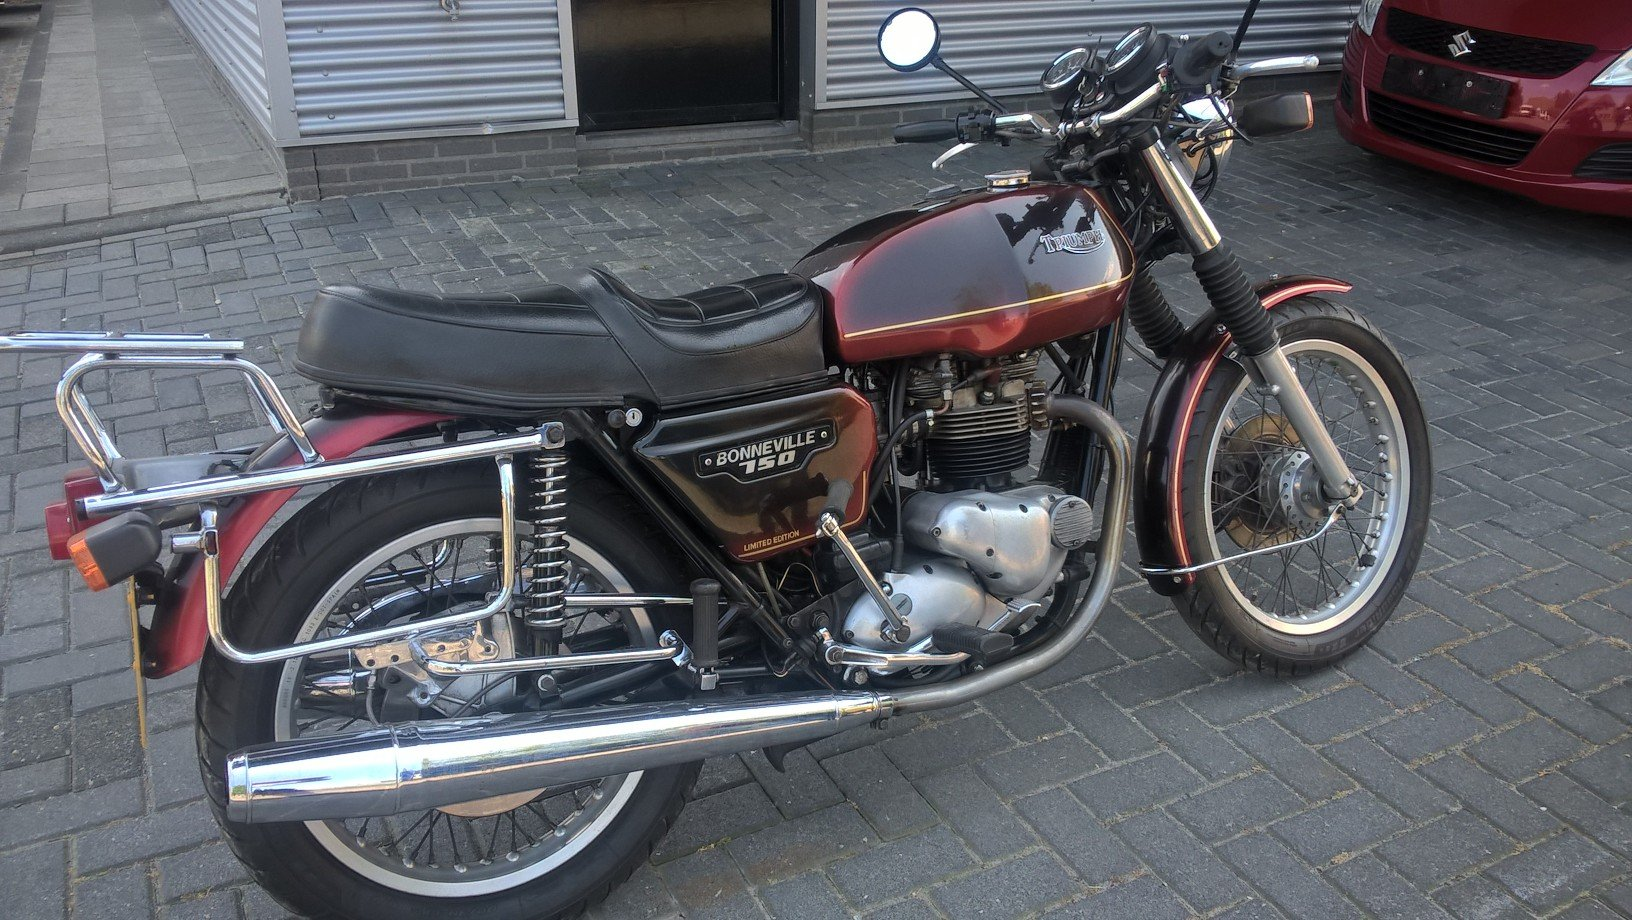 1980 Meriden electric start Bonneville For Sale (picture 4 of 6)